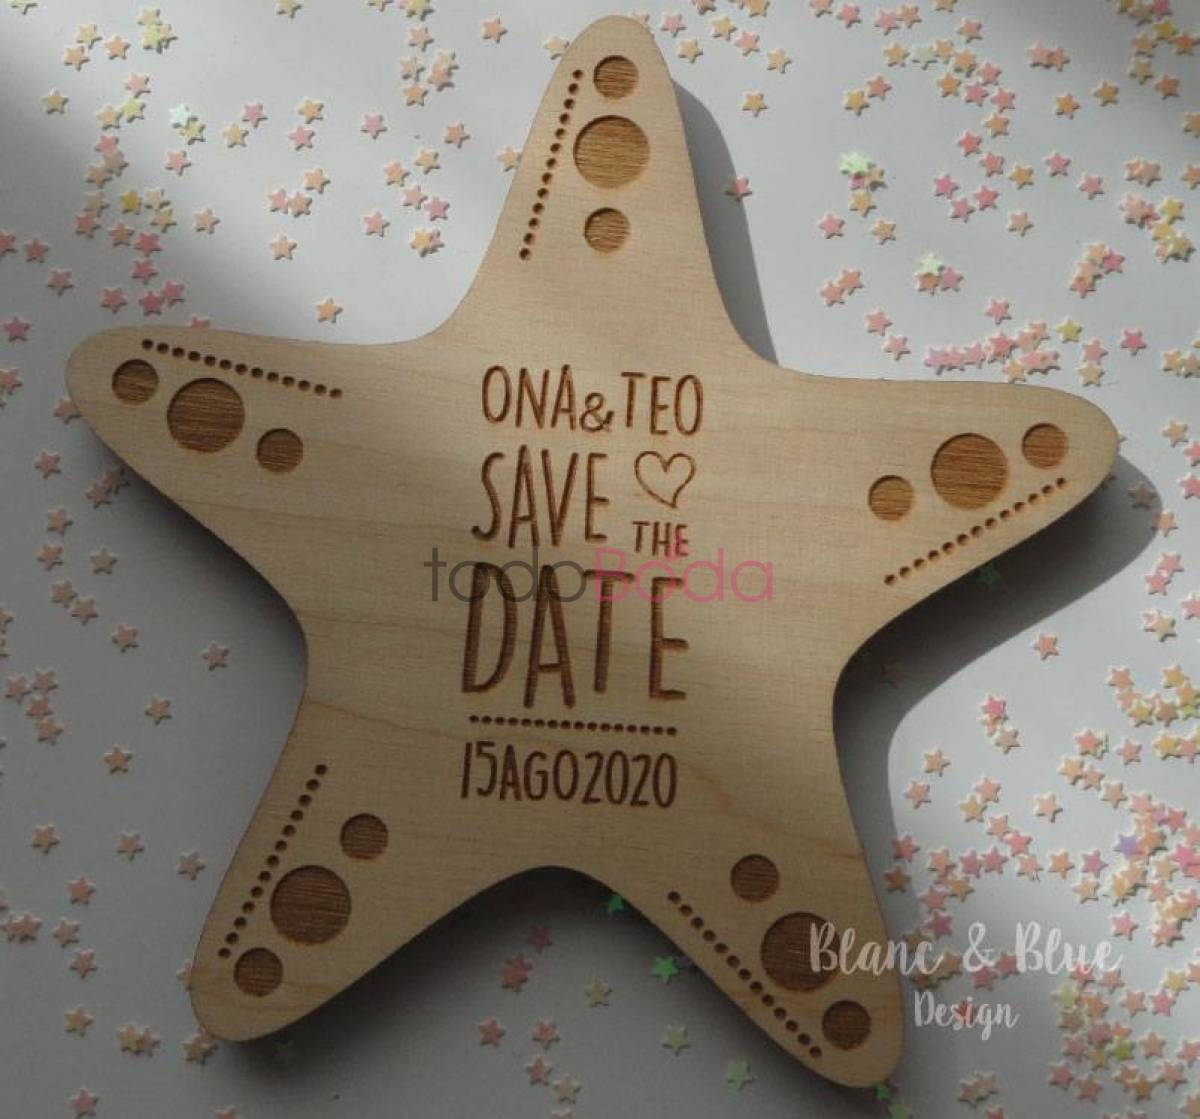 invitacion-boda-save-the-date-estrella-mar-madera-personalizada